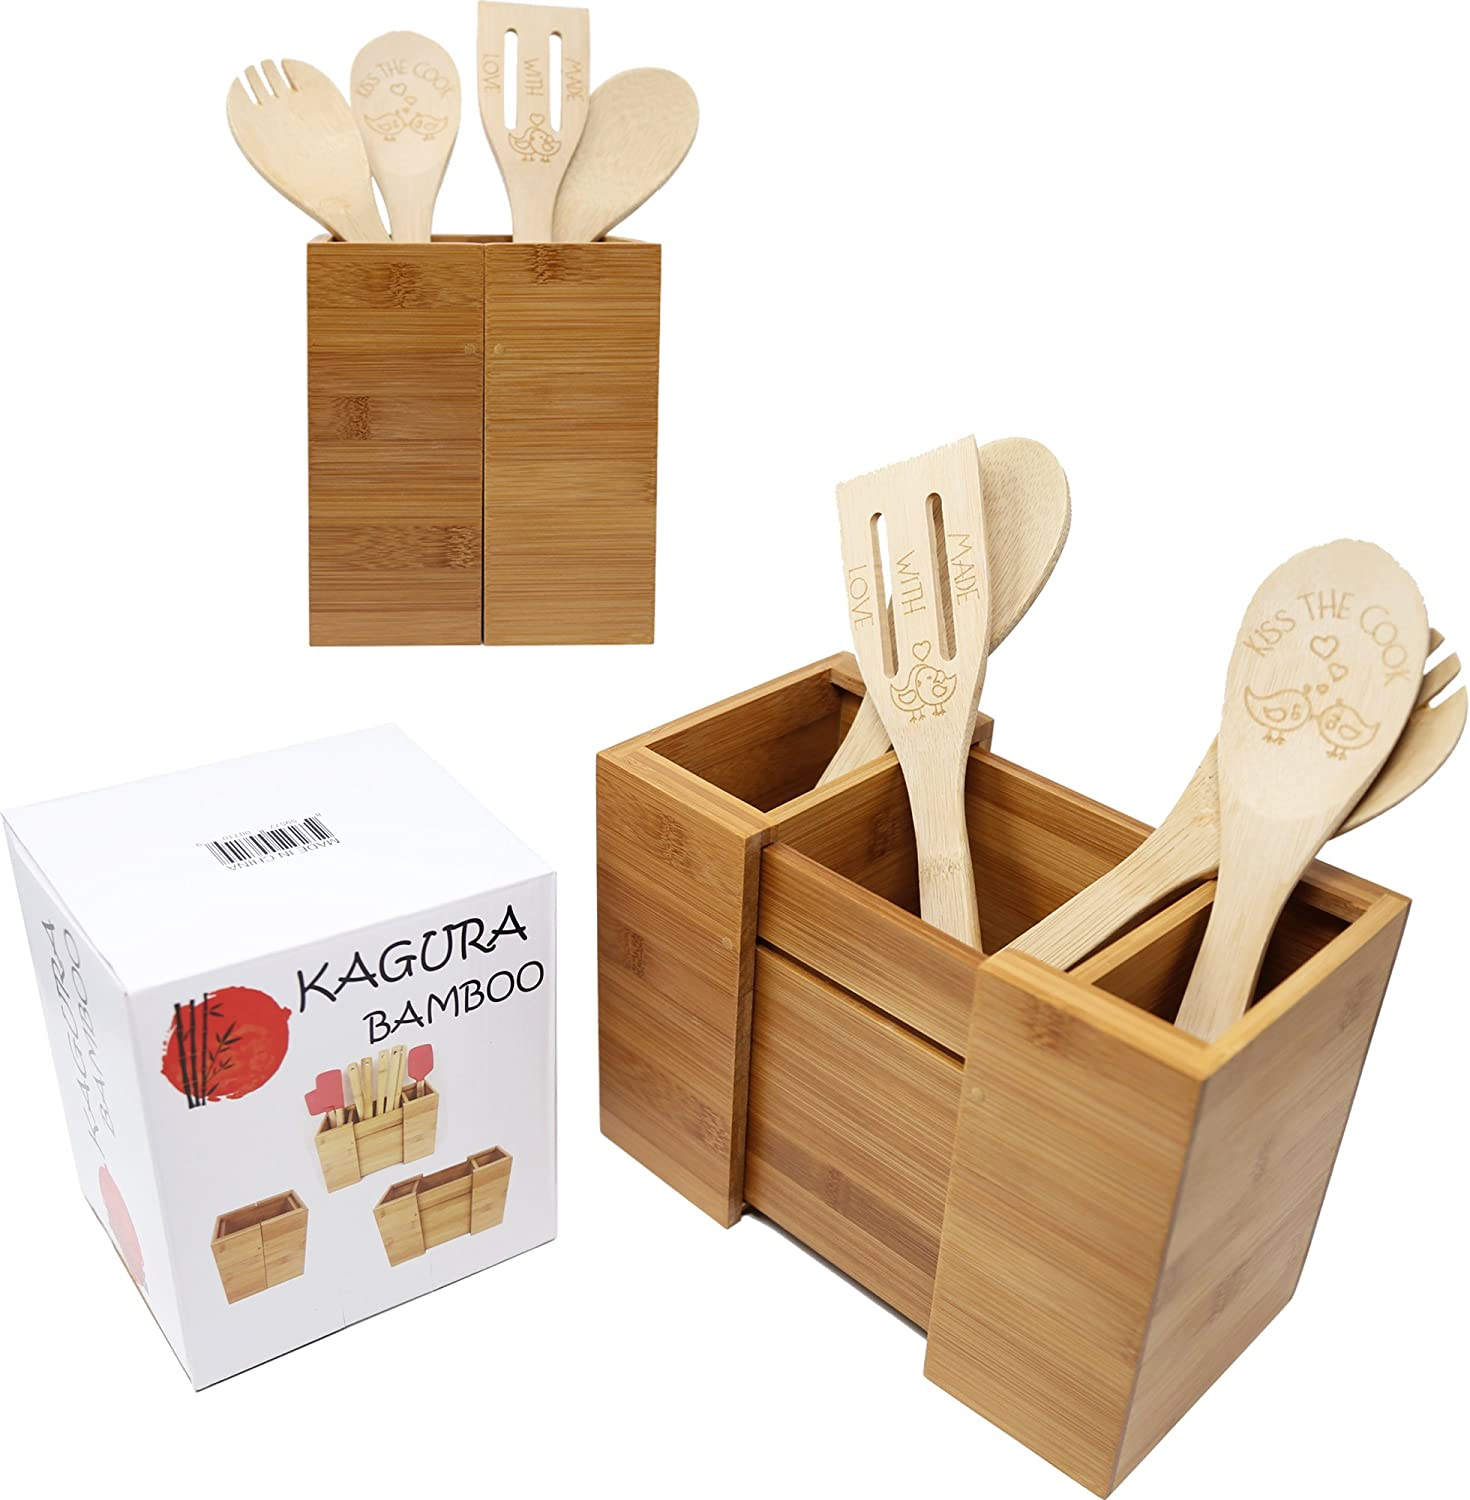 Bamboo Expandable Utensil Holder Organizer|Constructed from 100% Real  Bamboo Wood● Durable ●Dividers for Flatware and Kitchen Utensils